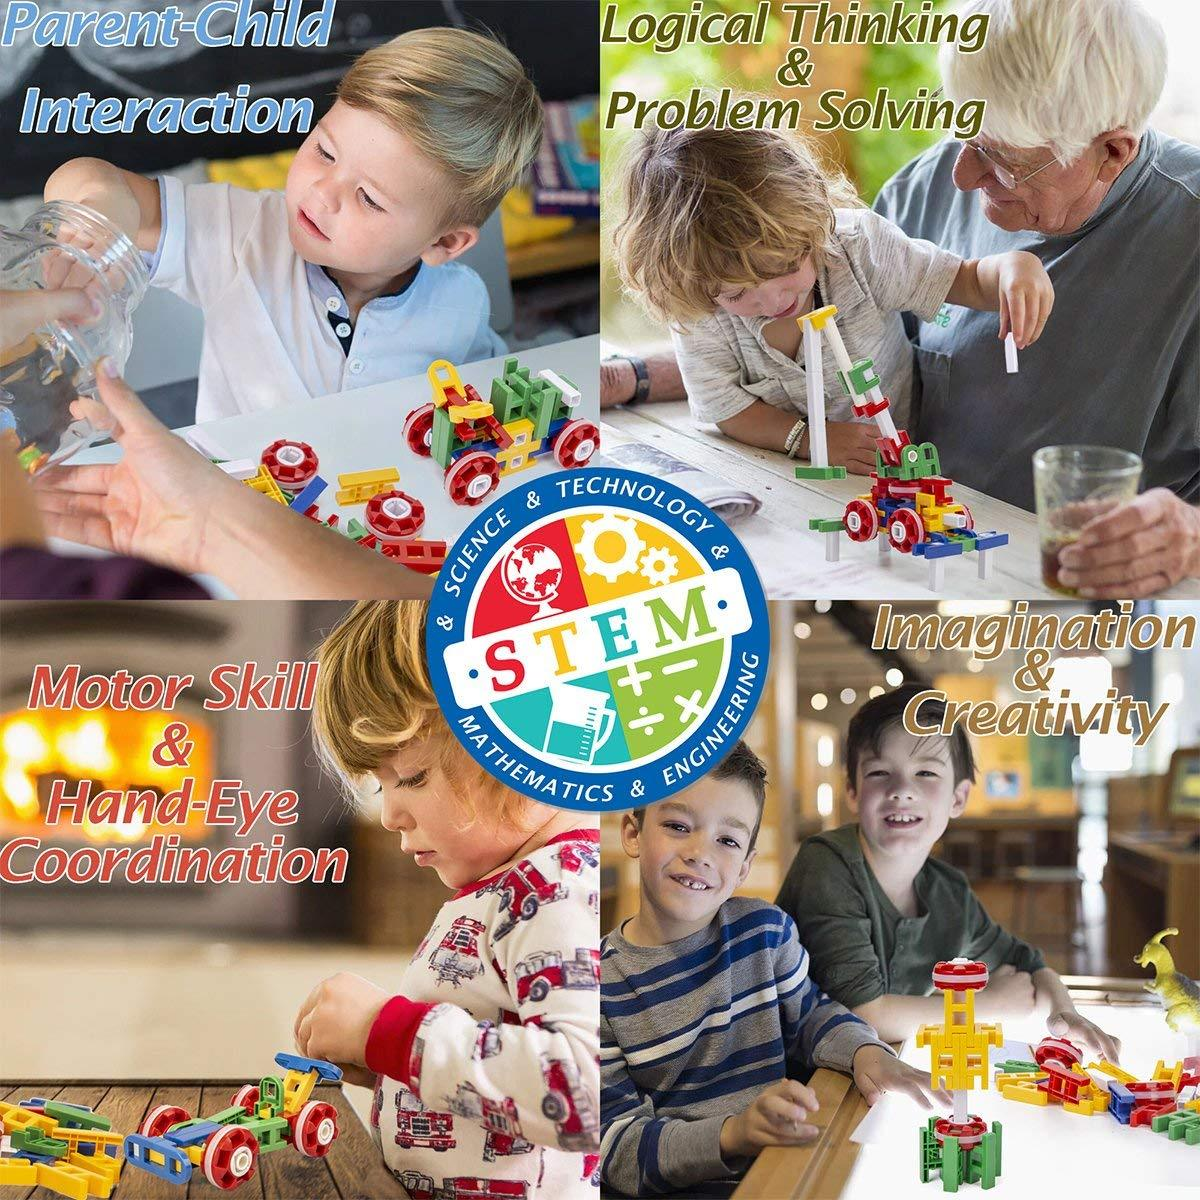 d561c7ad7bbb cossy STEM Learning Toy Engineering Construction Building Blocks 208 Pieces  Kids Educational Toy for Boys and Girls Ages 3 4 5 6 7 8 9 Year Old (208  Pcs) ...